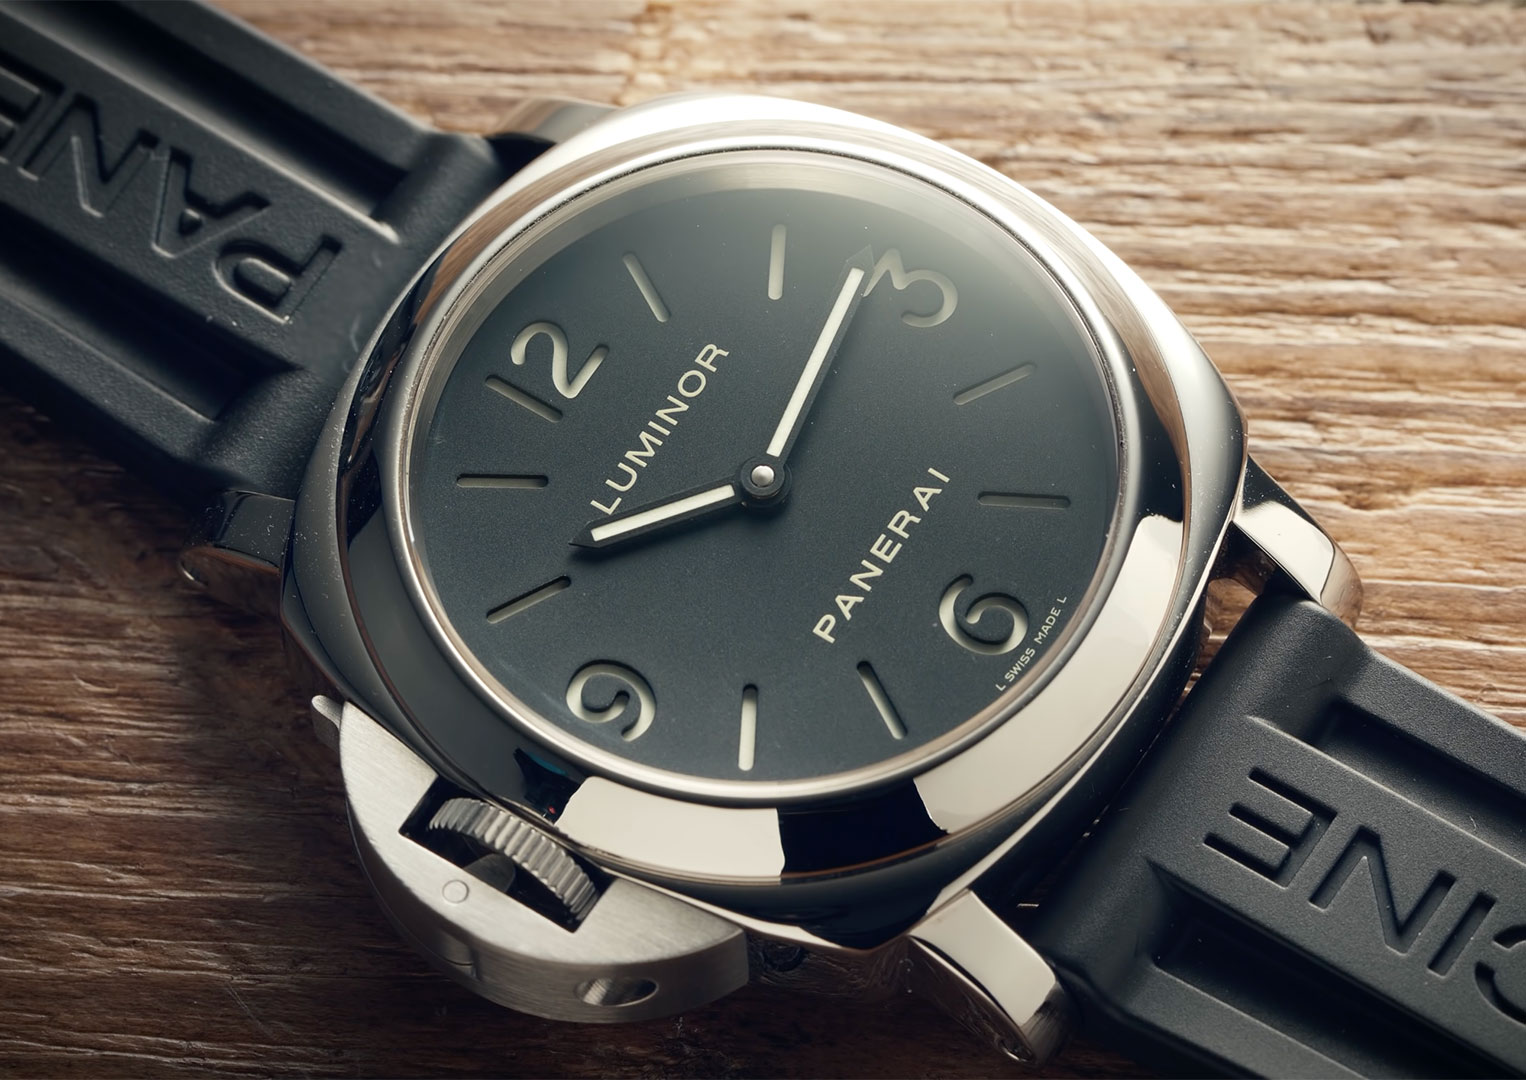 Panerai was founded in 1860, Florence, Italy